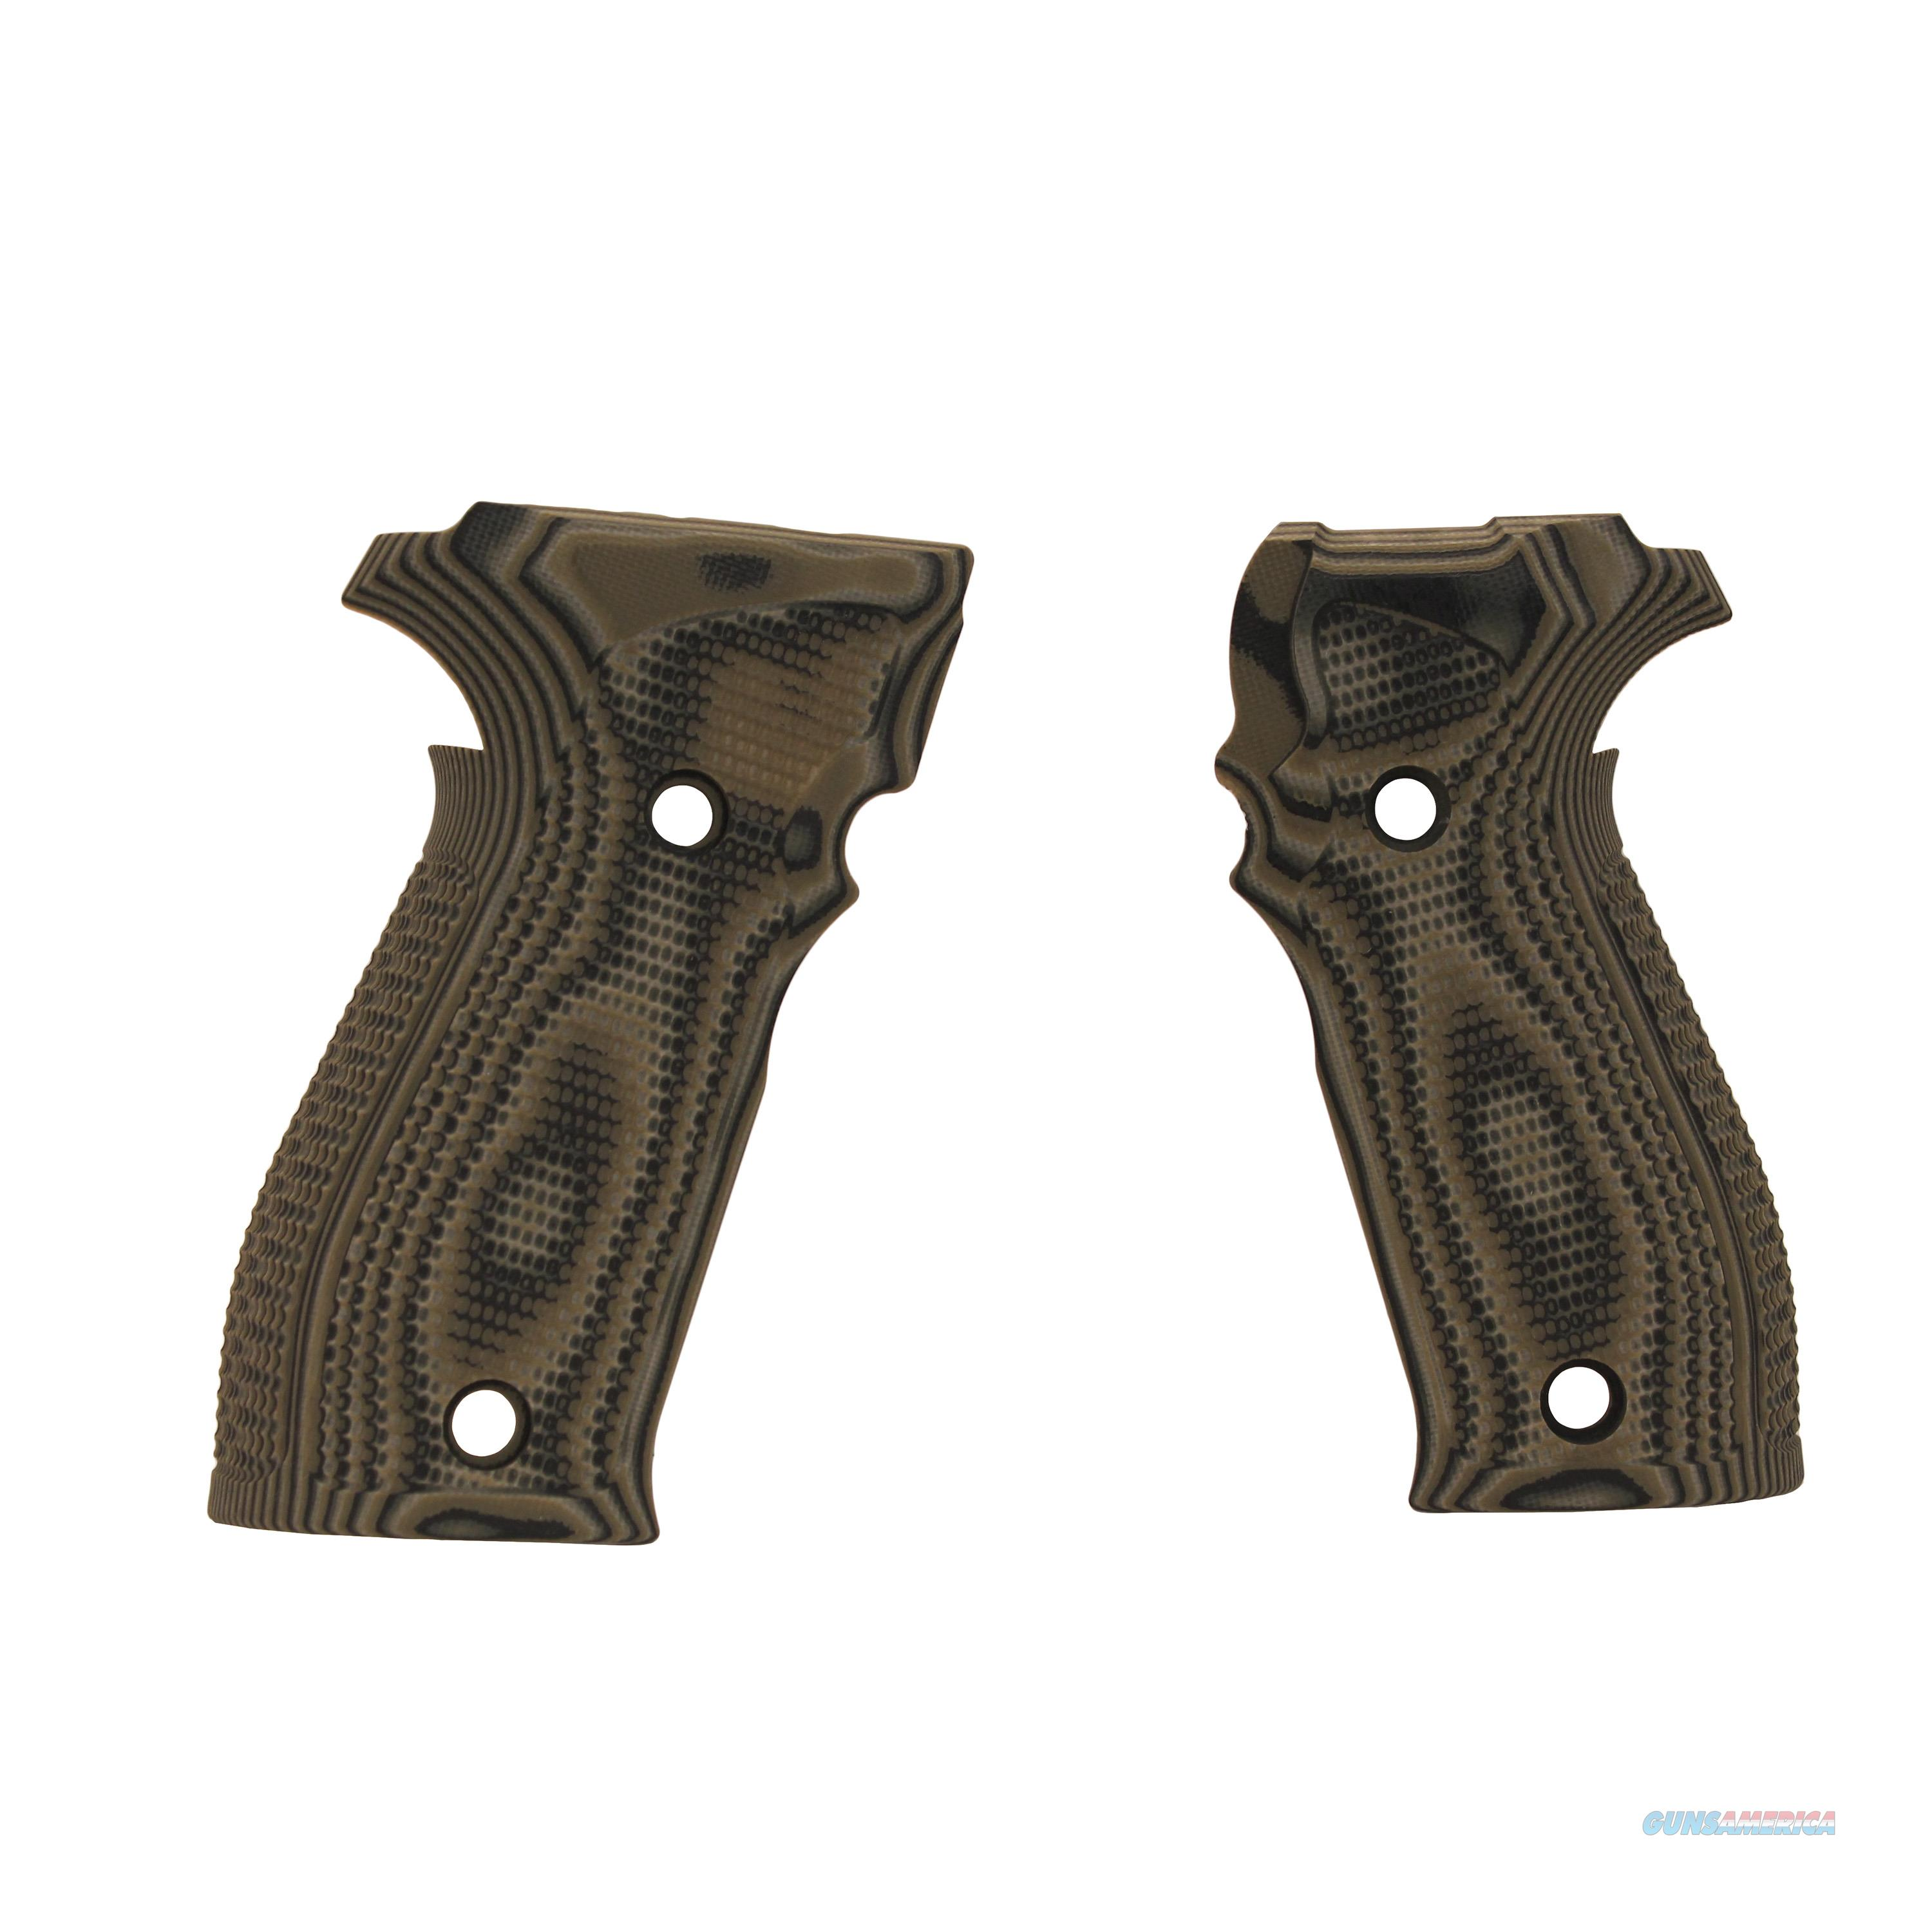 Hogue Sig P226 Grips 23128  Non-Guns > Gunstocks, Grips & Wood